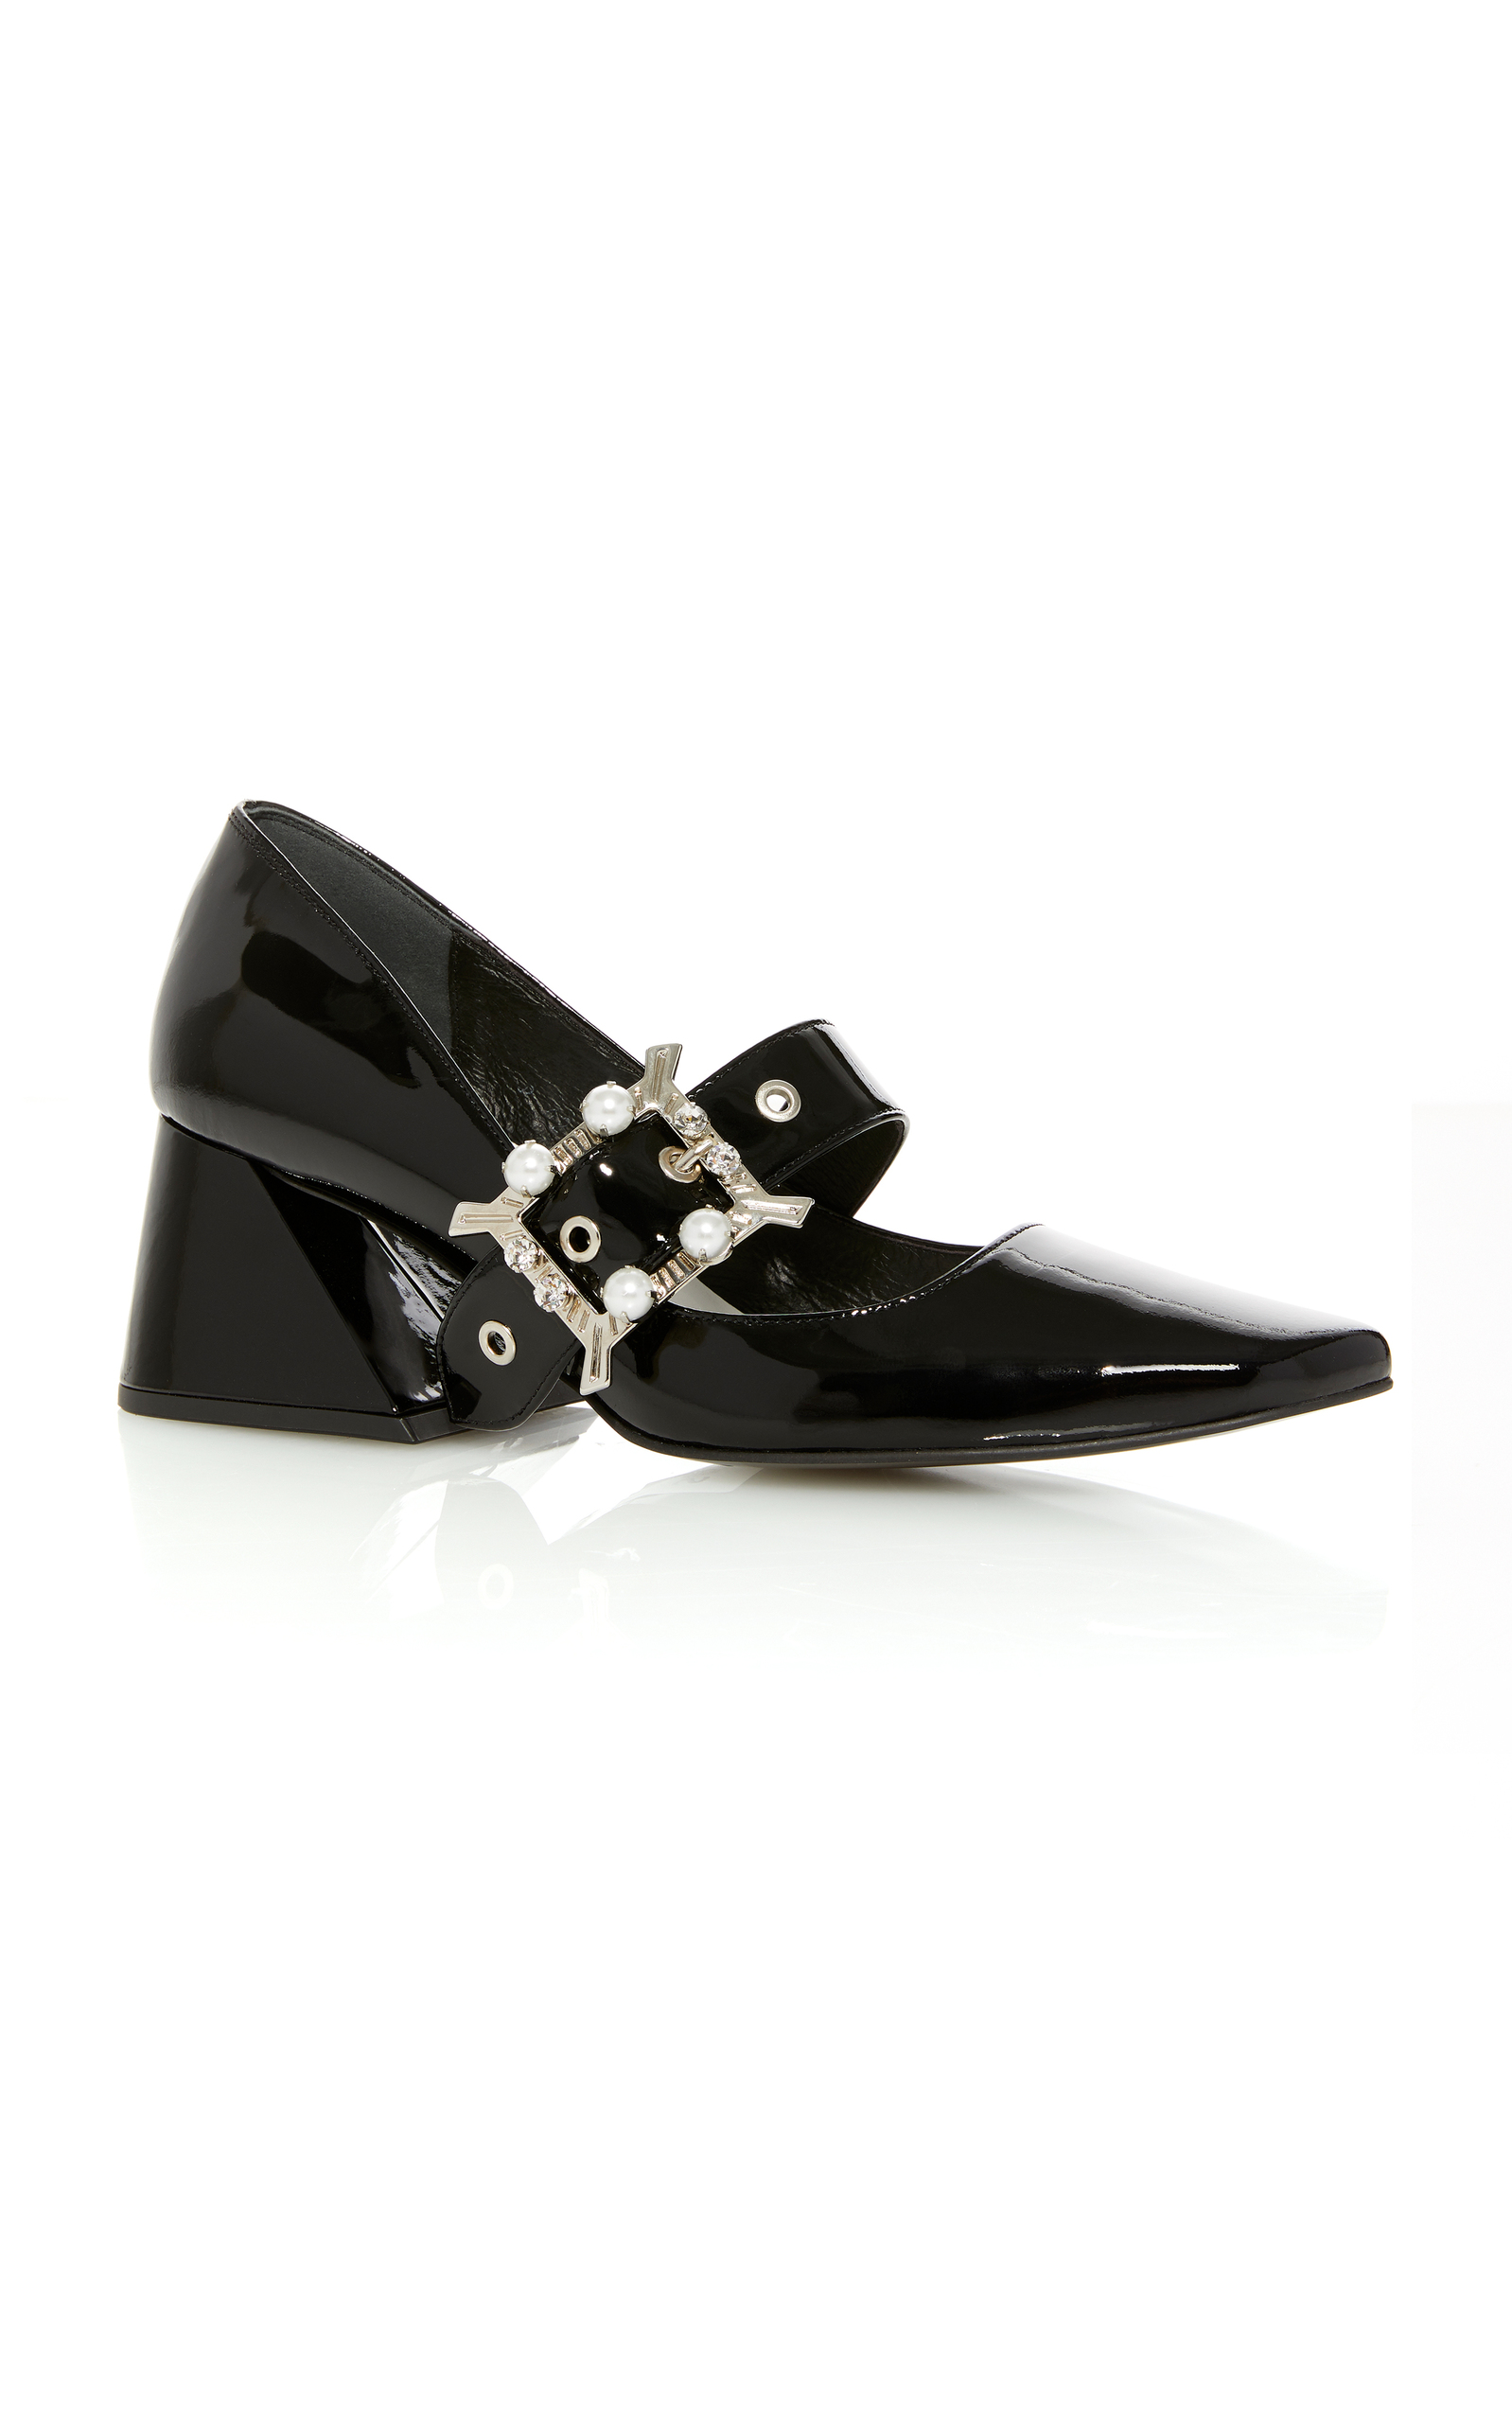 Patent Buckle Pump by Yuul Yie